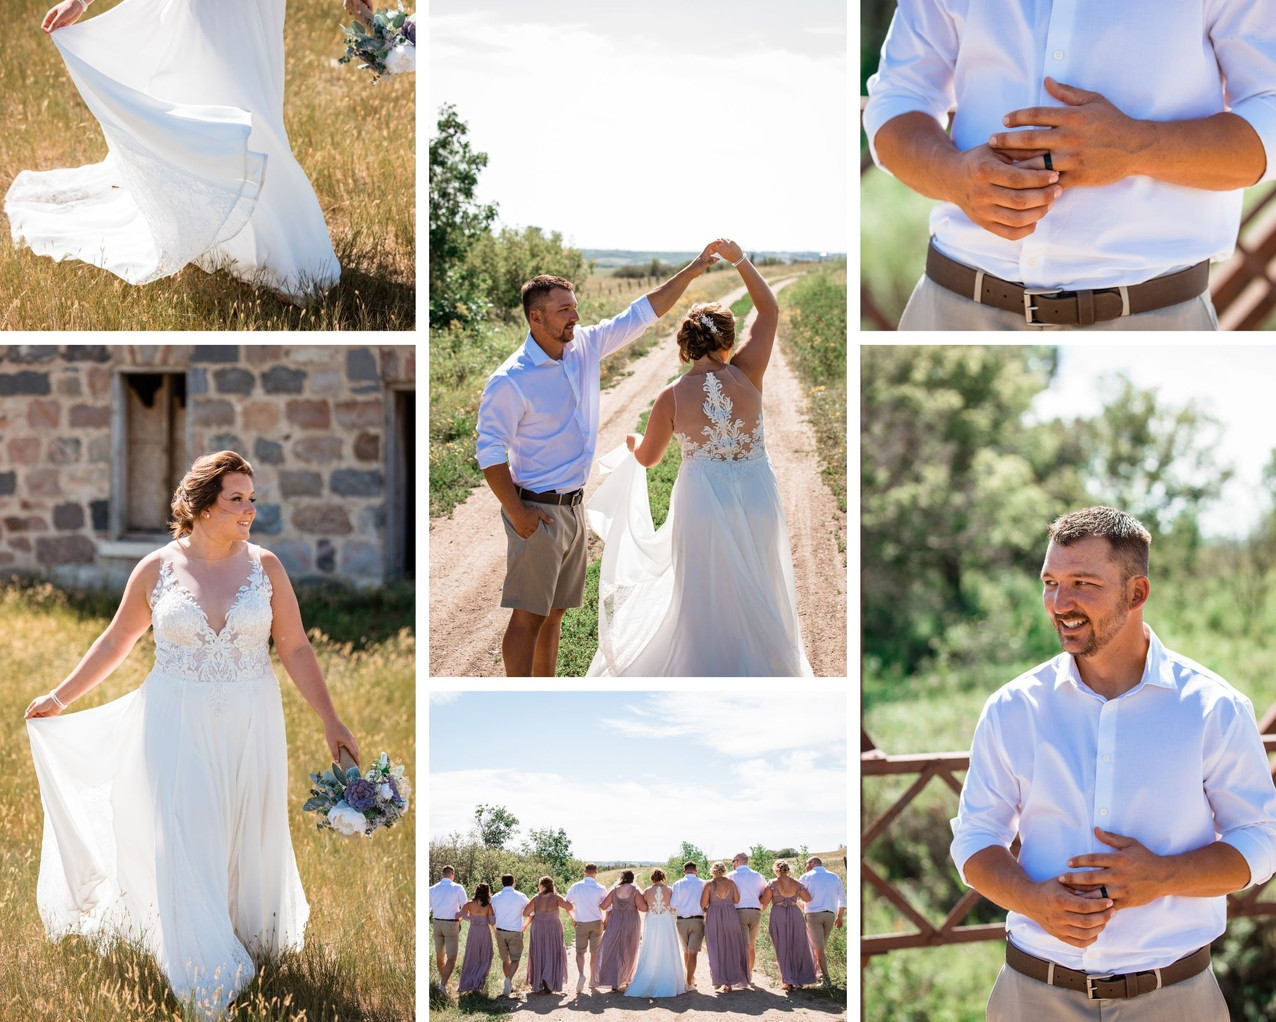 Farm wedding with bride and groom dancing on a dirt road and in a wheat field.